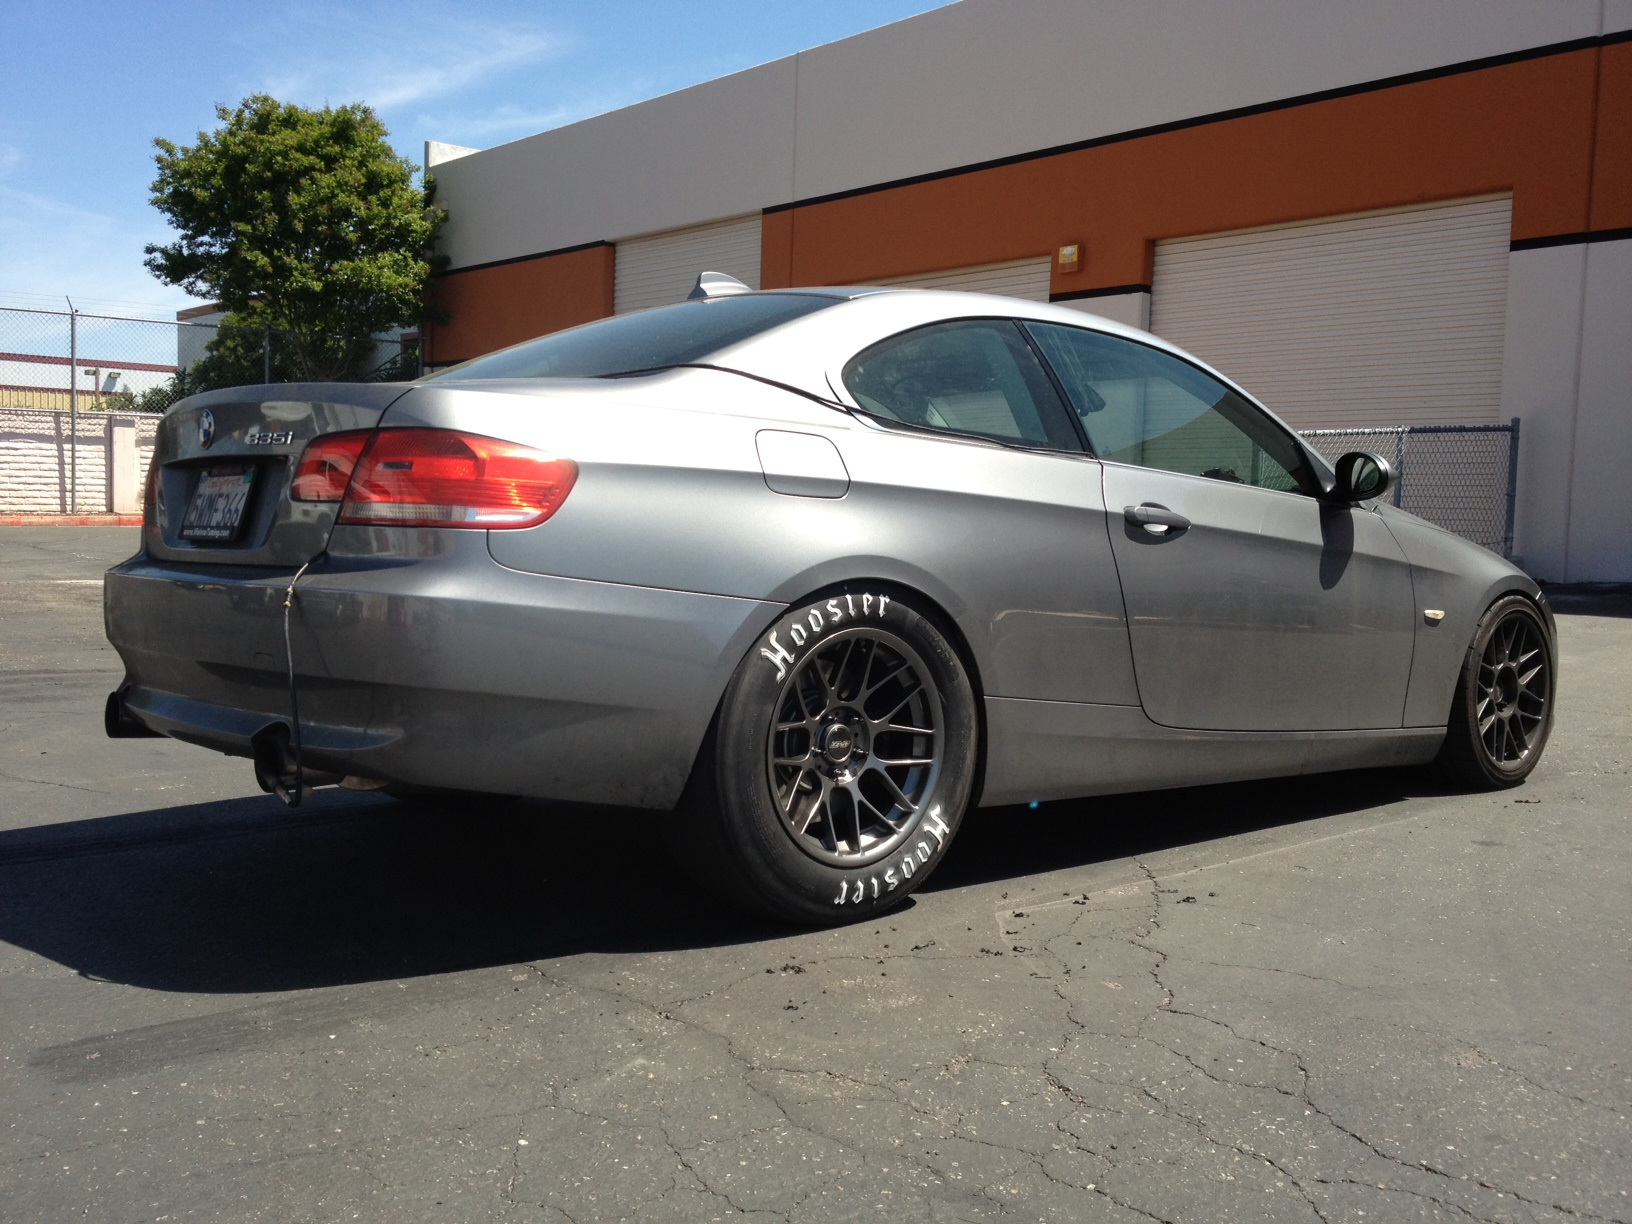 BMW I VishnuFFTEC Single Turbo Procede Mile Drag - 2007 bmw 335i performance upgrades